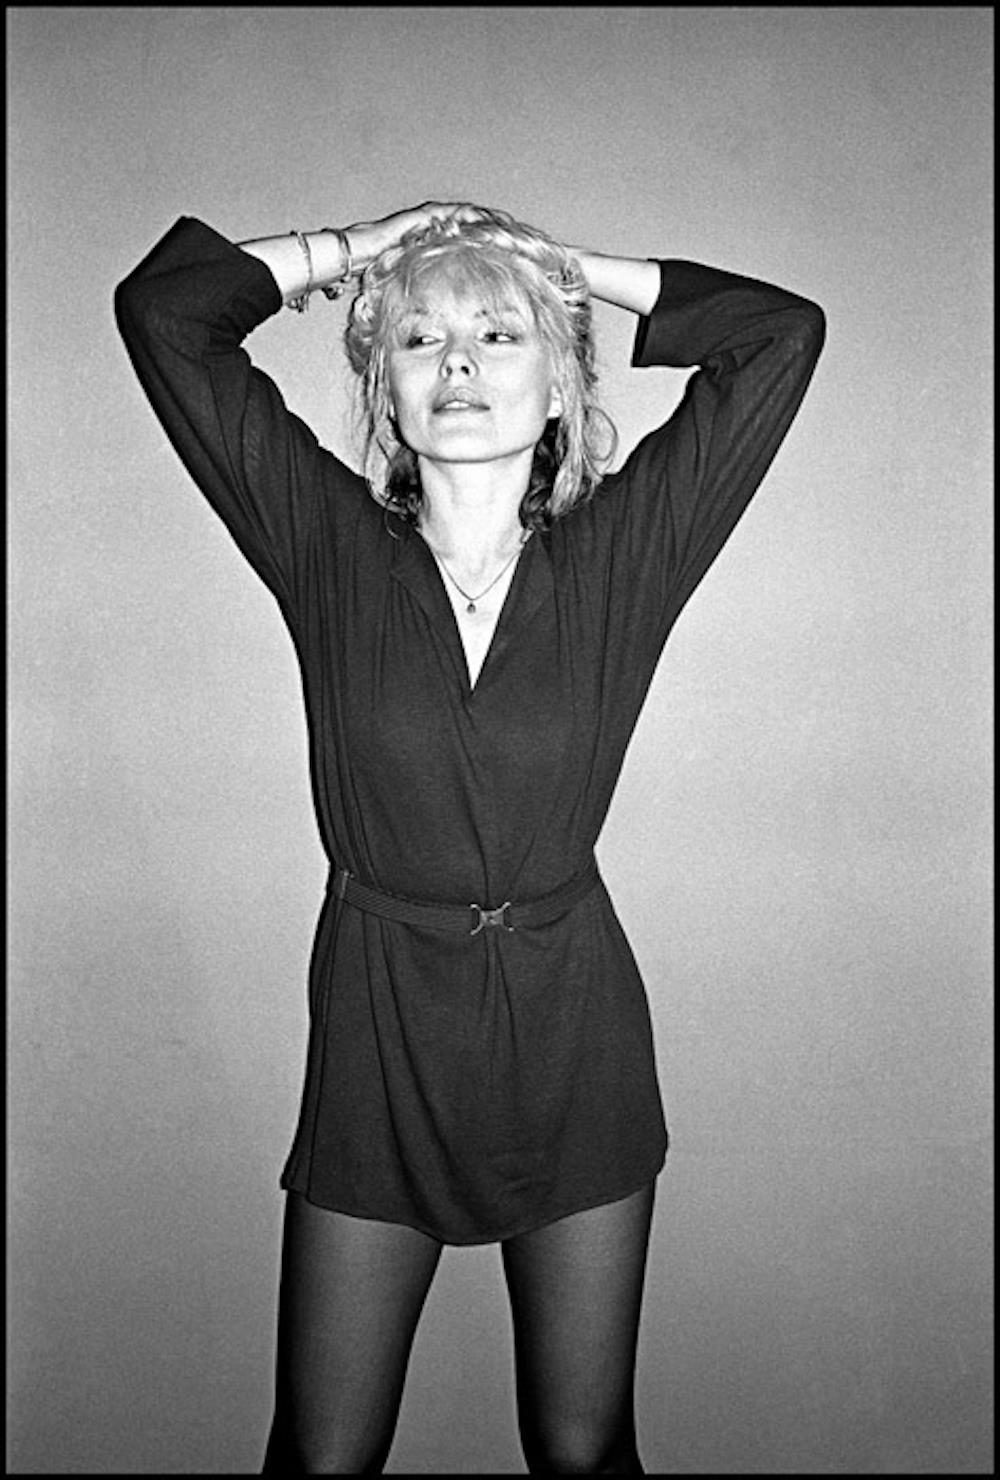 Blondie, Debbie Harry in Bournemouth, 1977 by Lawrence Impey